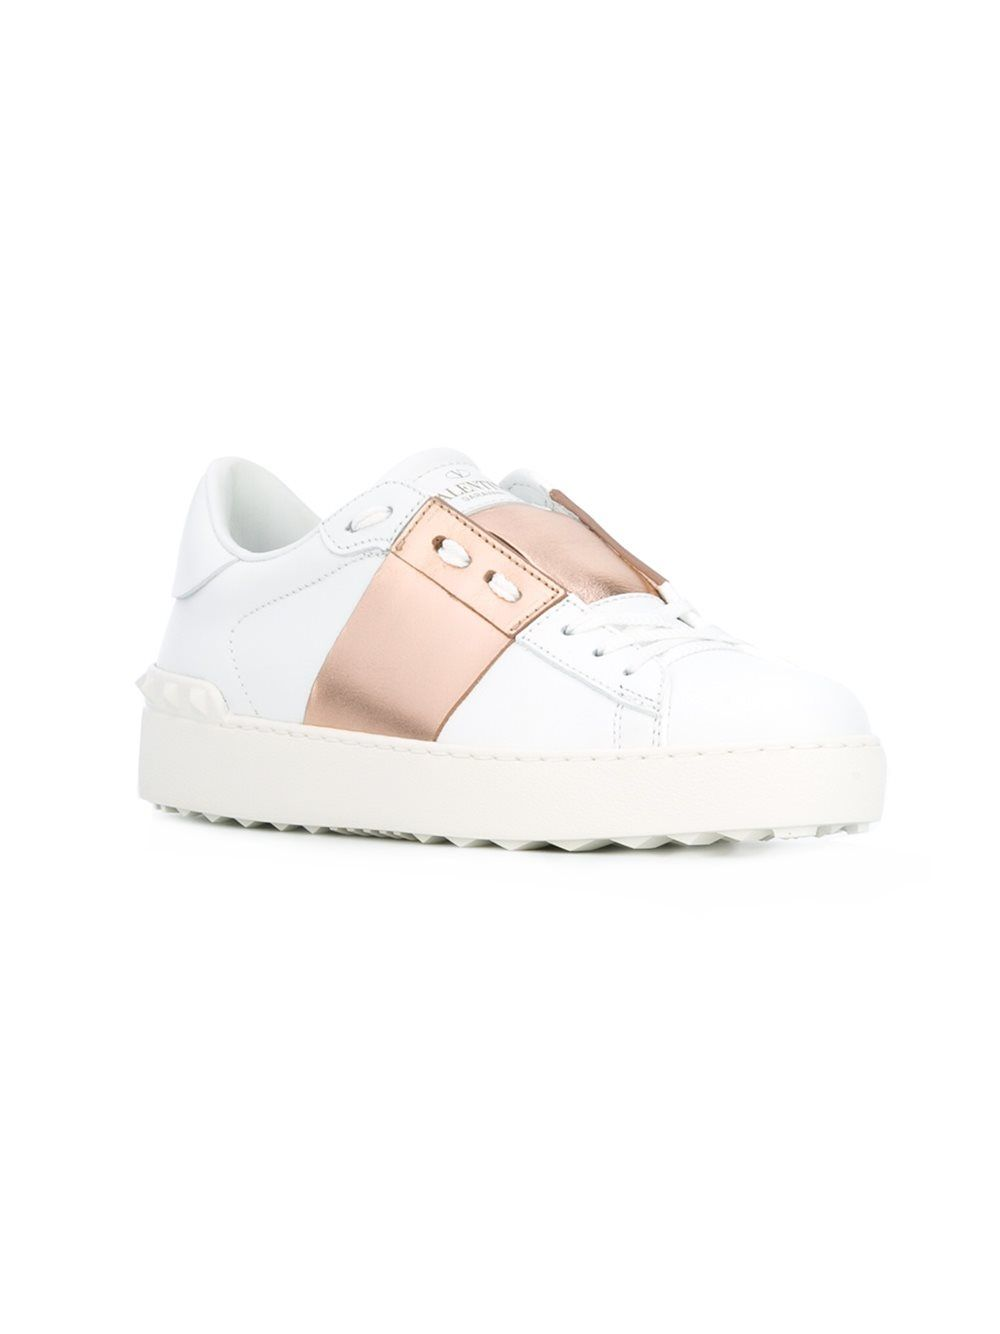 Sneakers Pinterest Basket Vêtement Valentino 'open' Chaussure Pqx17